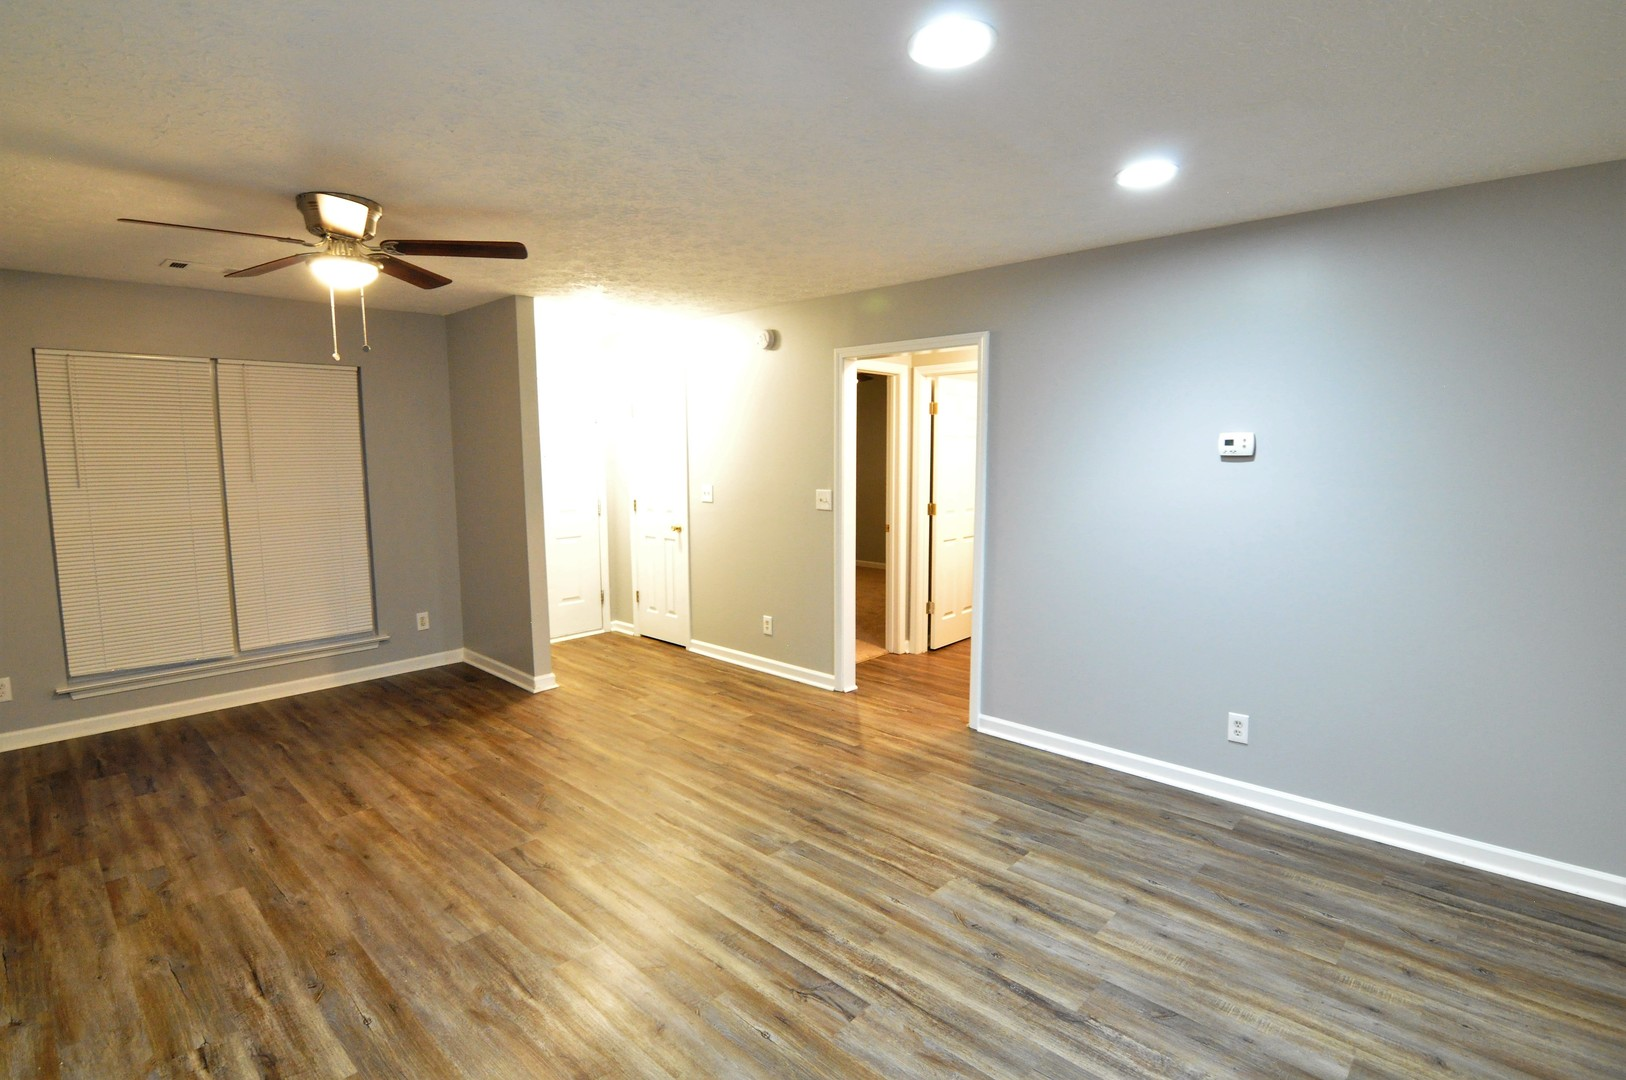 FOR RENT IN MILLBROOK! 2 BED 1 BATH AT 3711 SANFORD DRIVE APT A